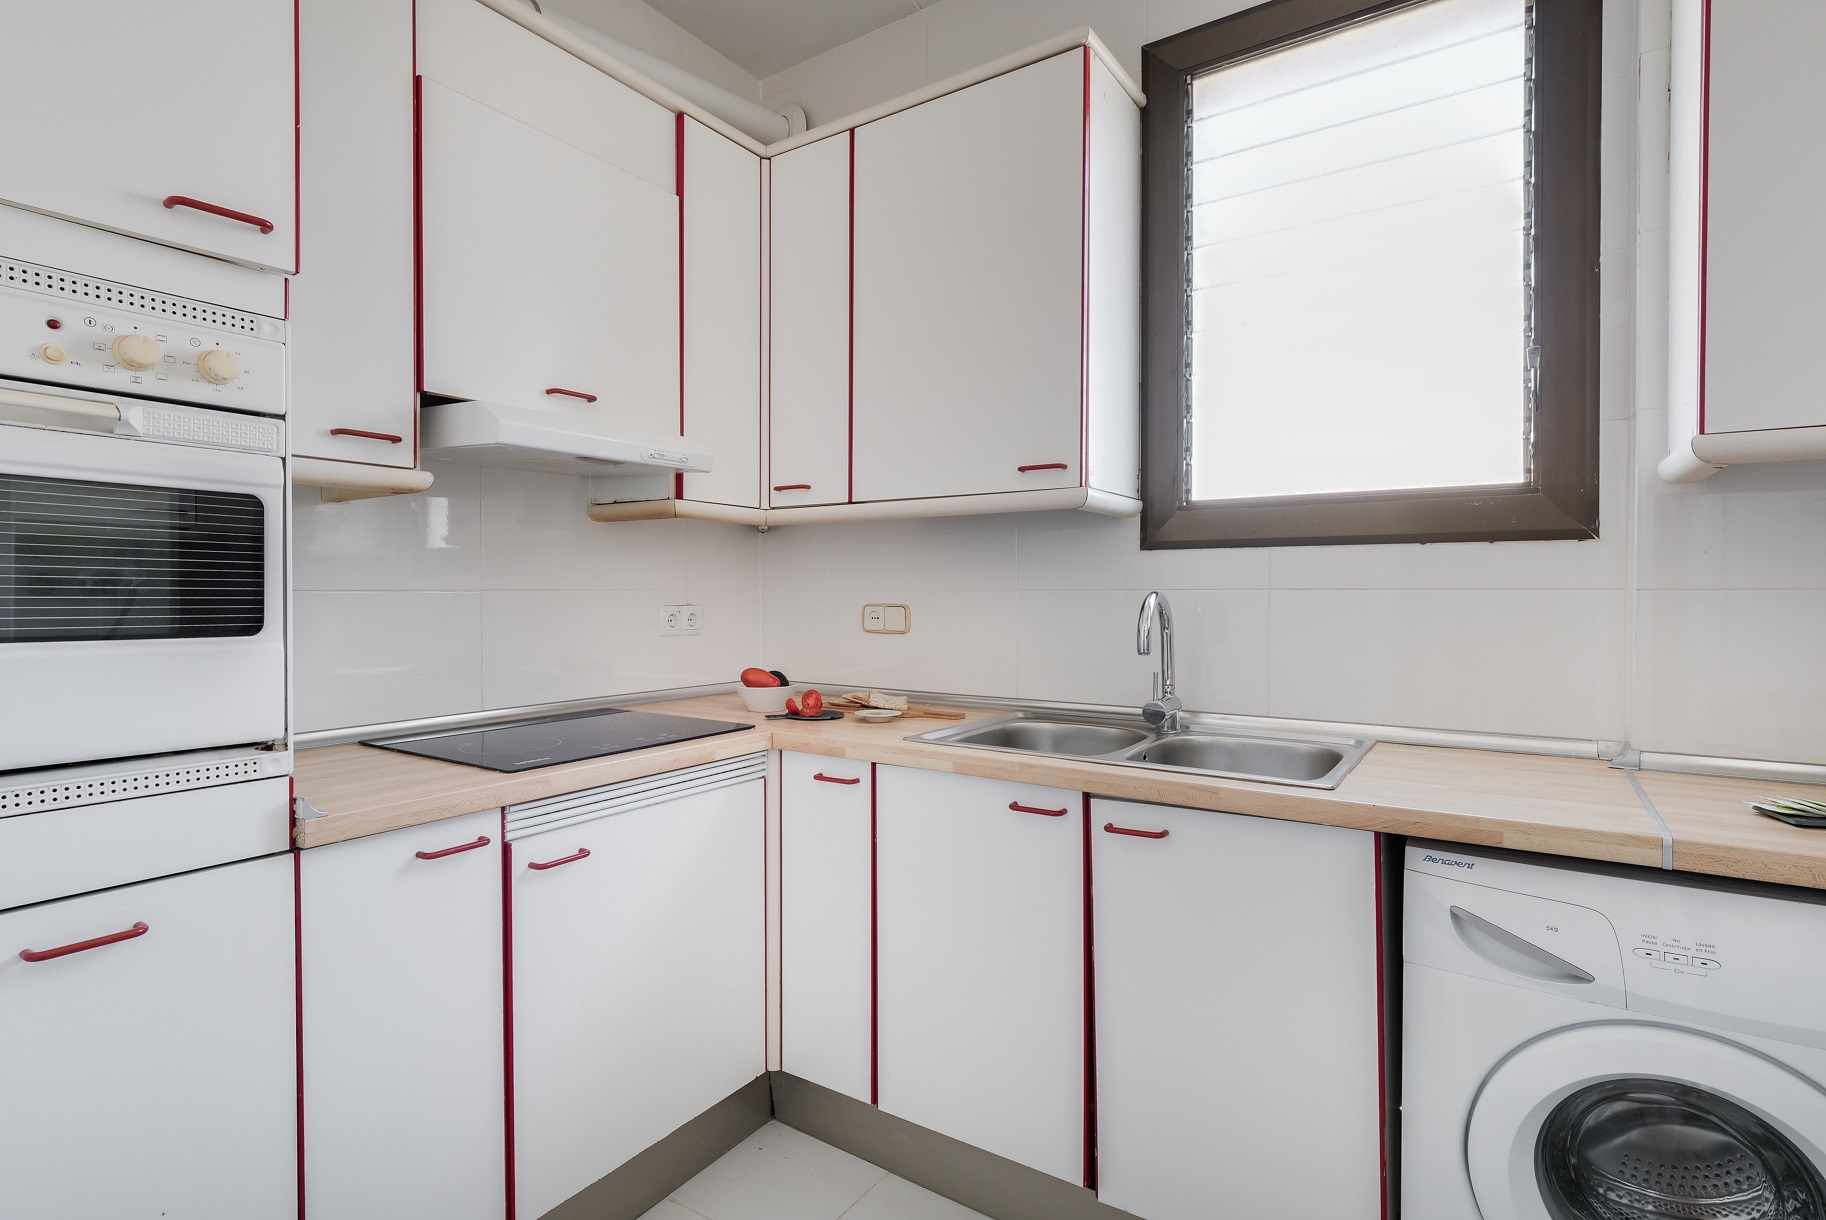 Kitchen facilities at Rocafort Apartments